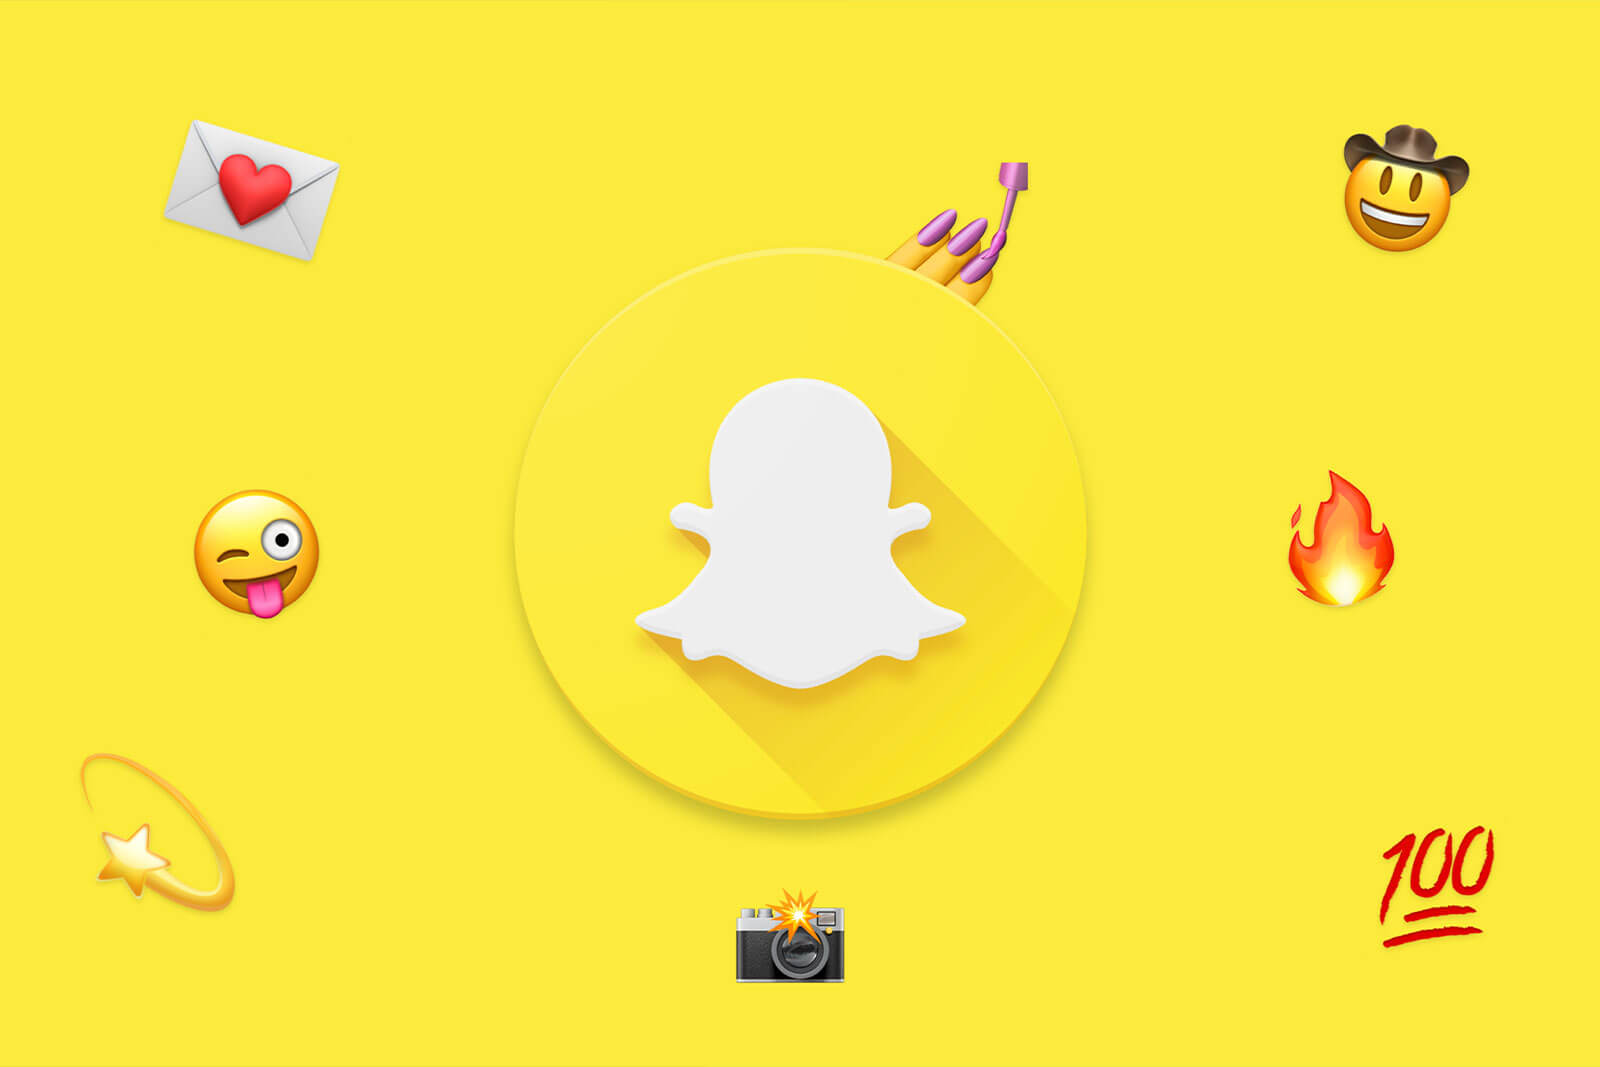 What Does Other Snapchatters, Pending, Red Heart, SFS, Hourglass, SB, OTP, and Streak Mean On Snapchat